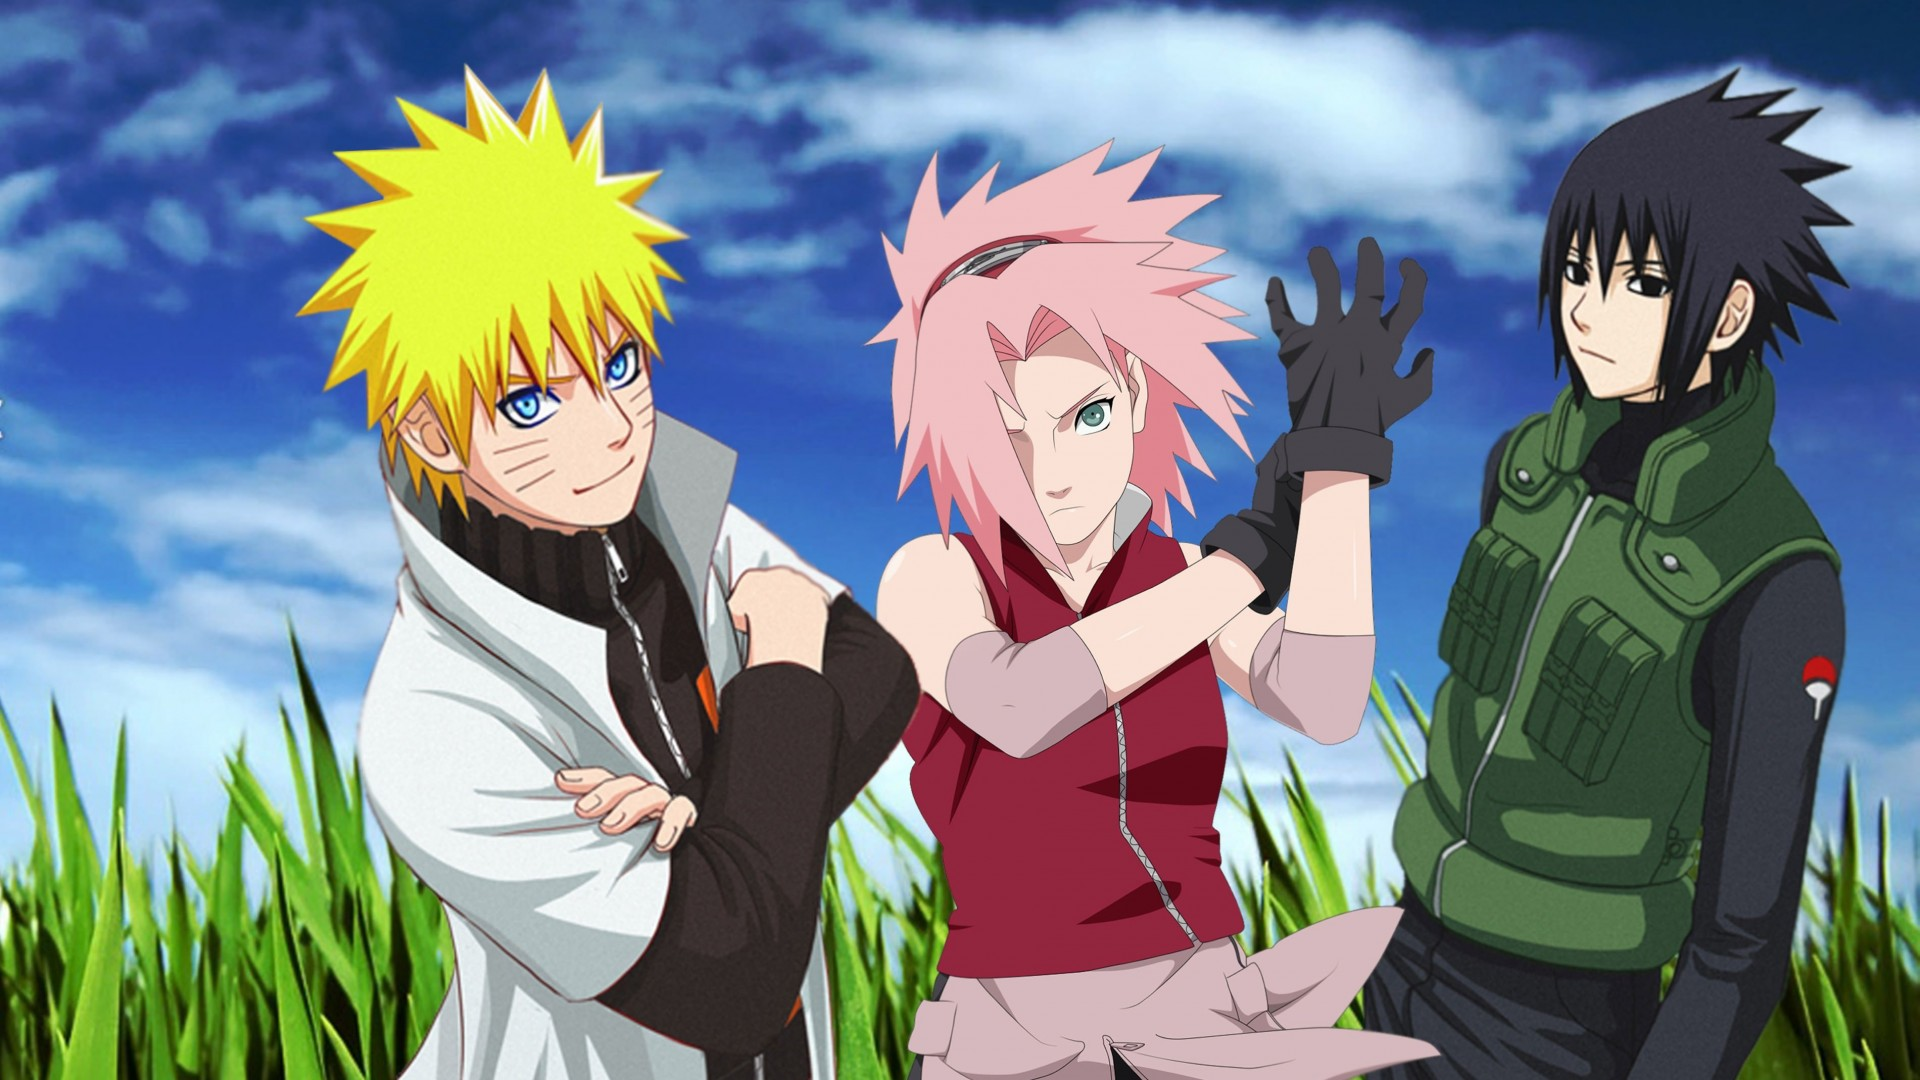 Naruto, Sakura and Sasuke Wallpaper for Desktop 1920x1080